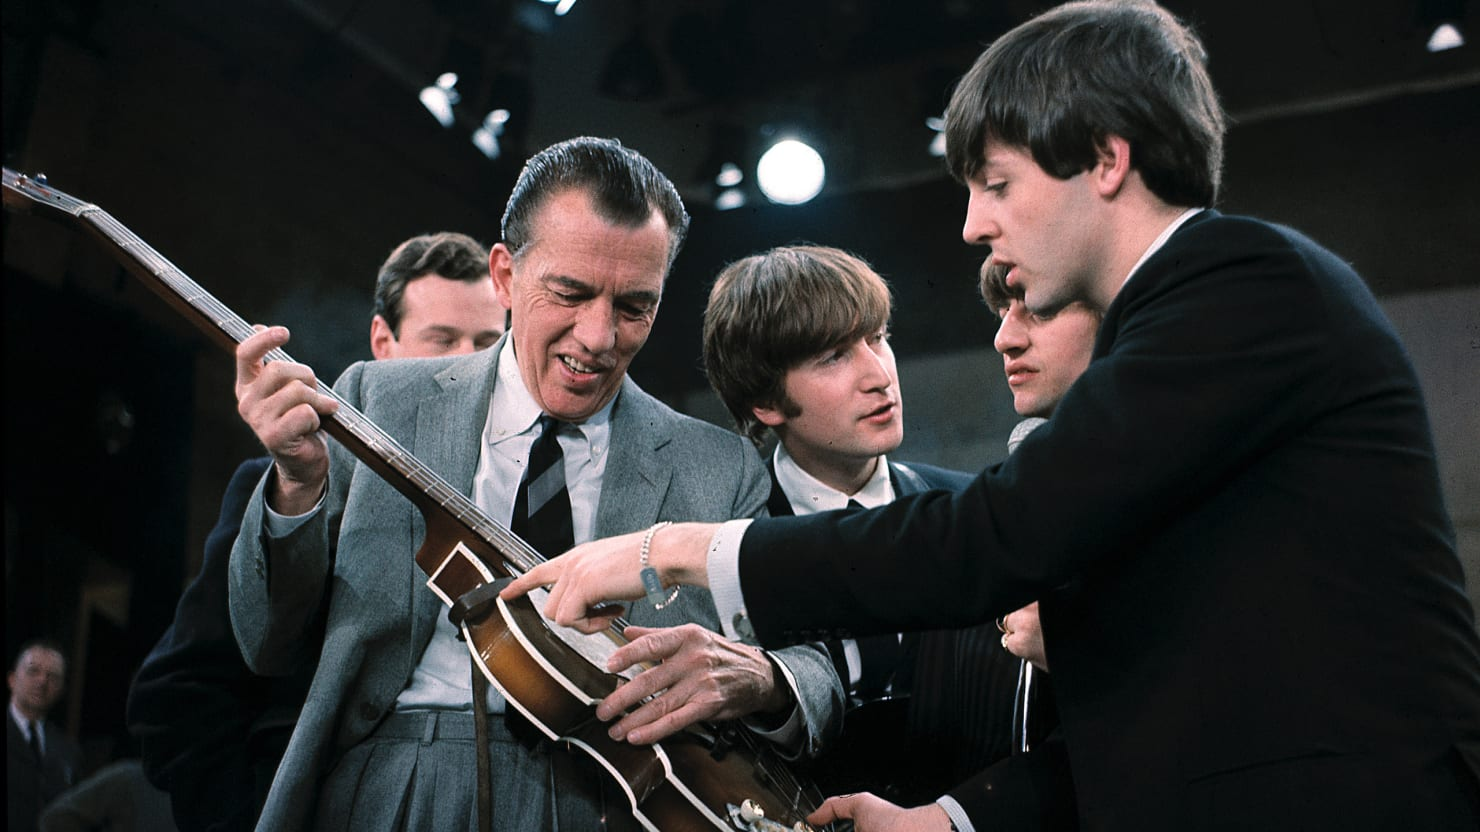 A Revolution With Guitars How The Beatles Changed Everything